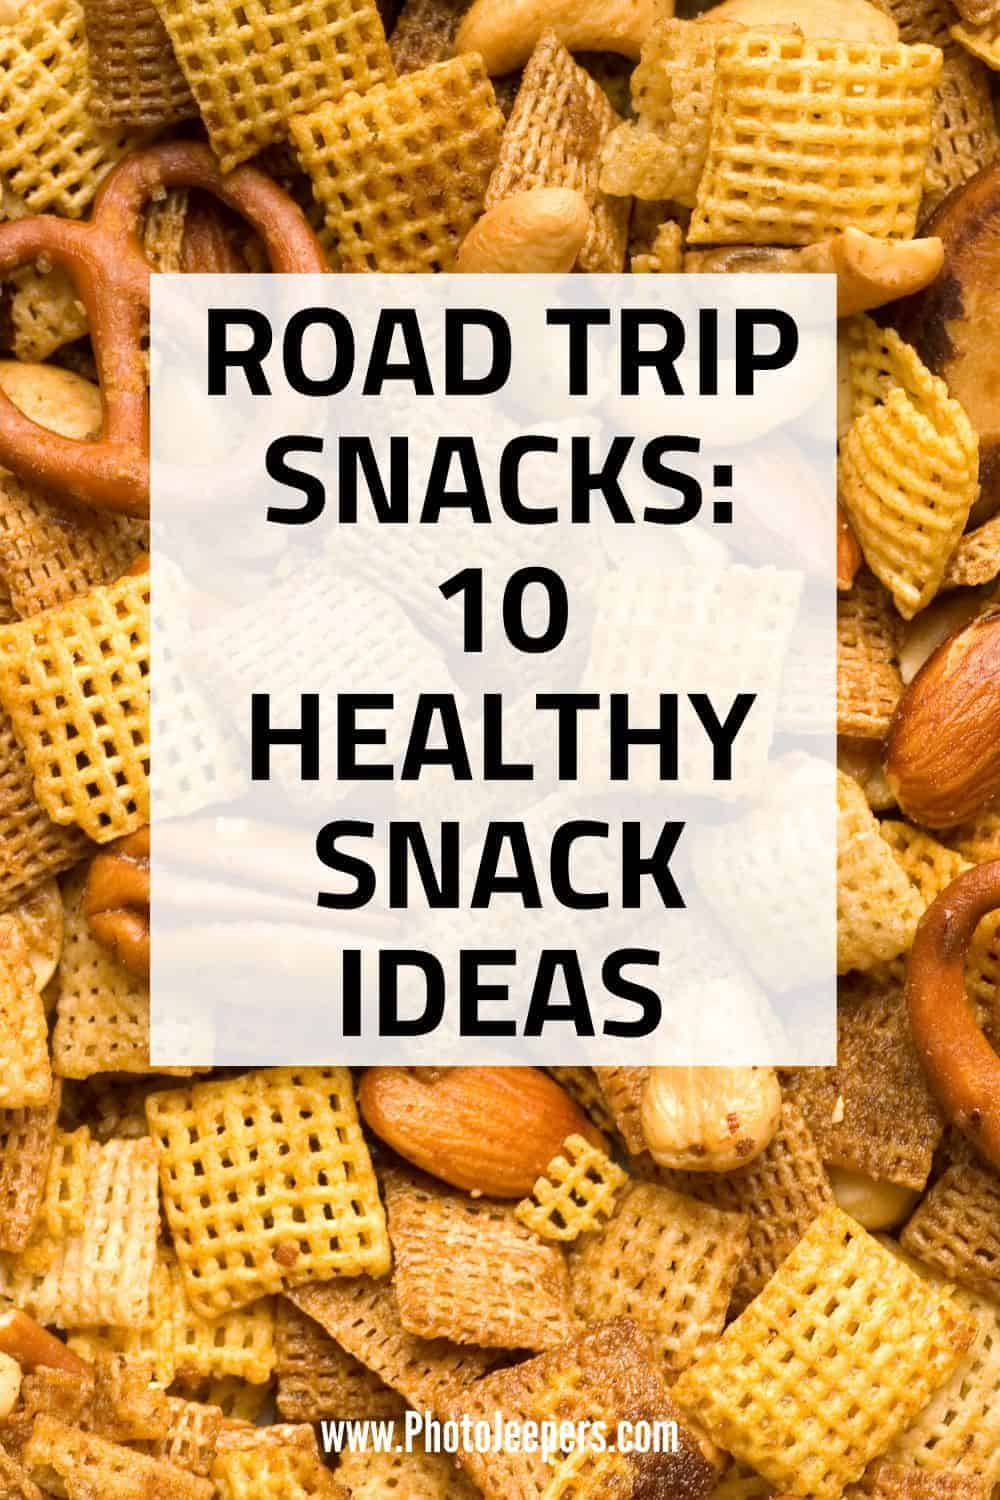 Looking for a healthy road trip snack? Here's a list of 10 snack ideas that are healthy, filling and portable which makes them perfect for travel, road trip or hiking snacks. #travel #granolabars #healthysnack #photojeepers